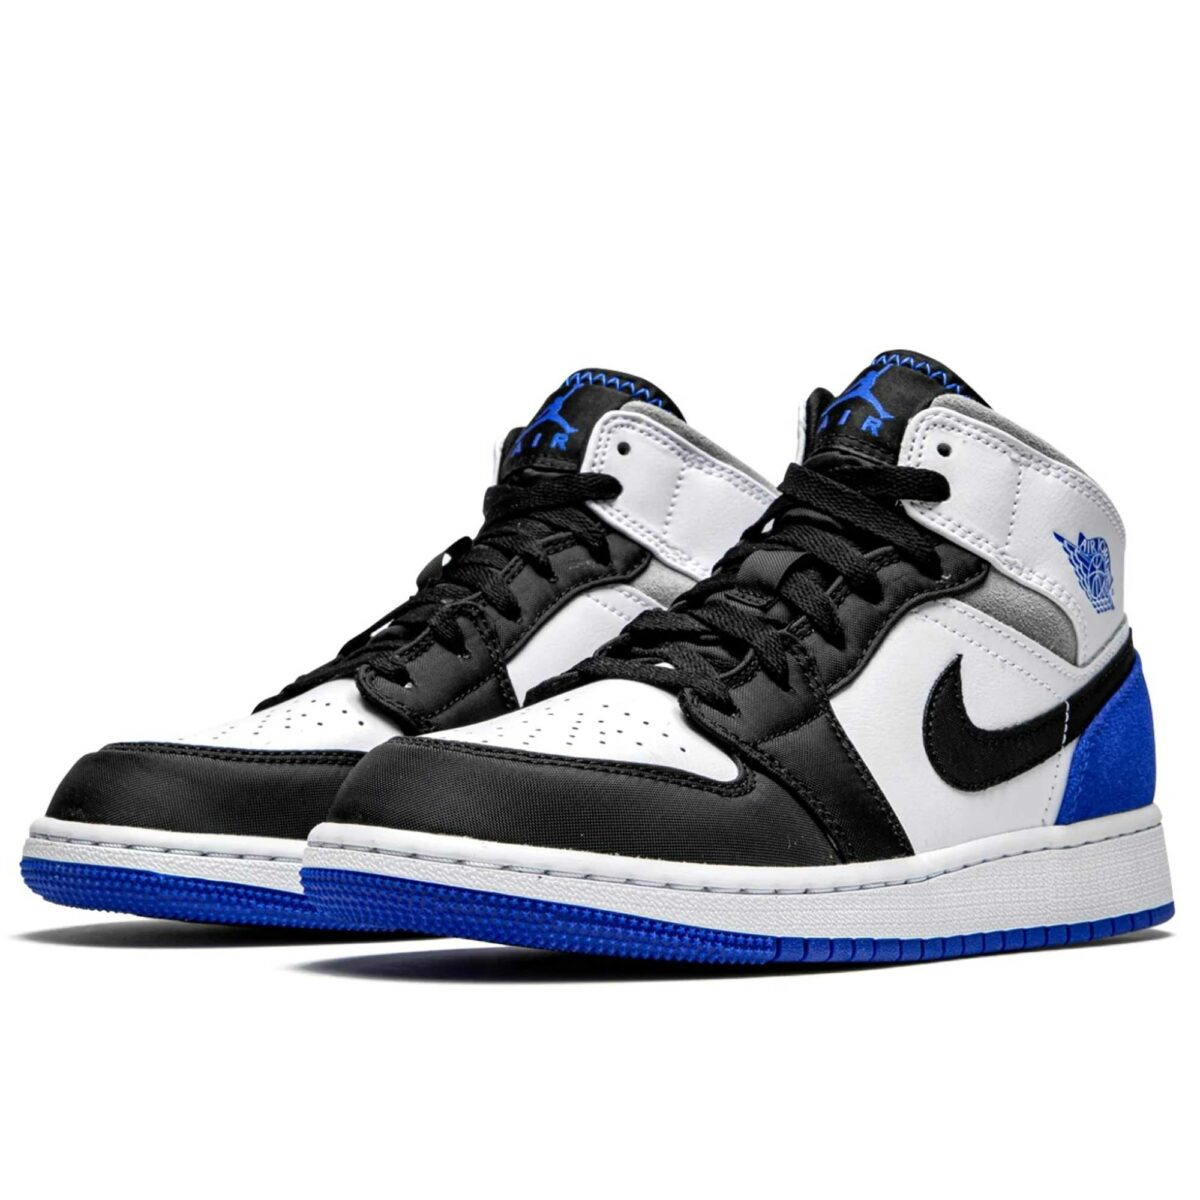 nike air Jordan 1 mid royal white BQ6931_102 купить